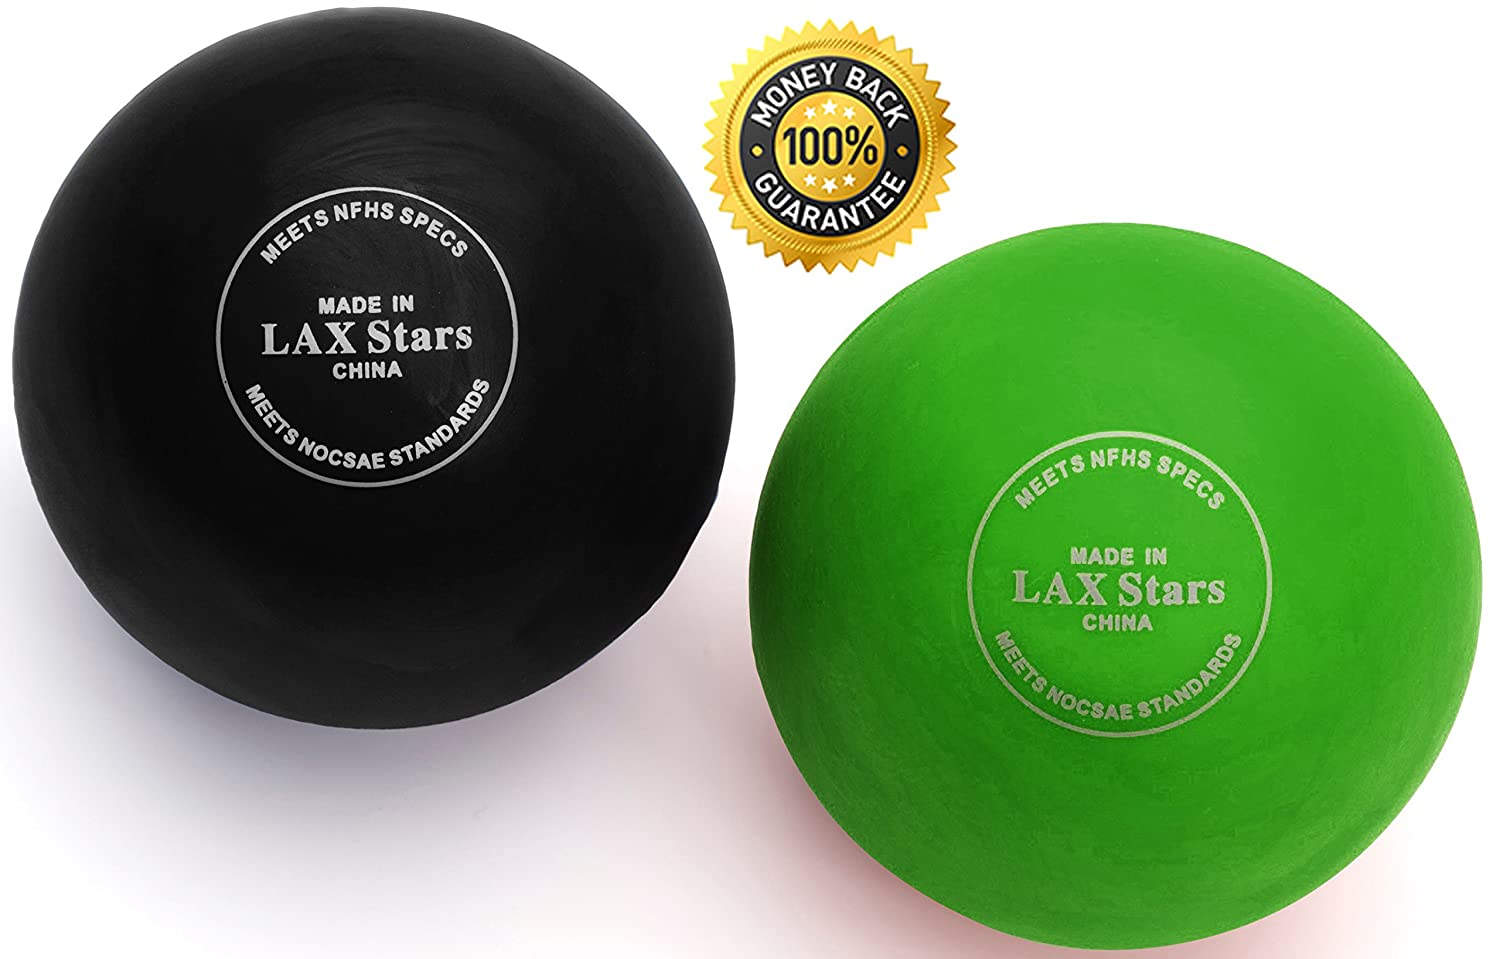 LAX Stars Lacrosse Balls Massage Ball Therapy - Myofascial Tension Release, Fascia Release, Massage Balls for Foot, Massage Balls for Back, Trigger Point Therapy Balls, Yoga, Pack of 2 Balls